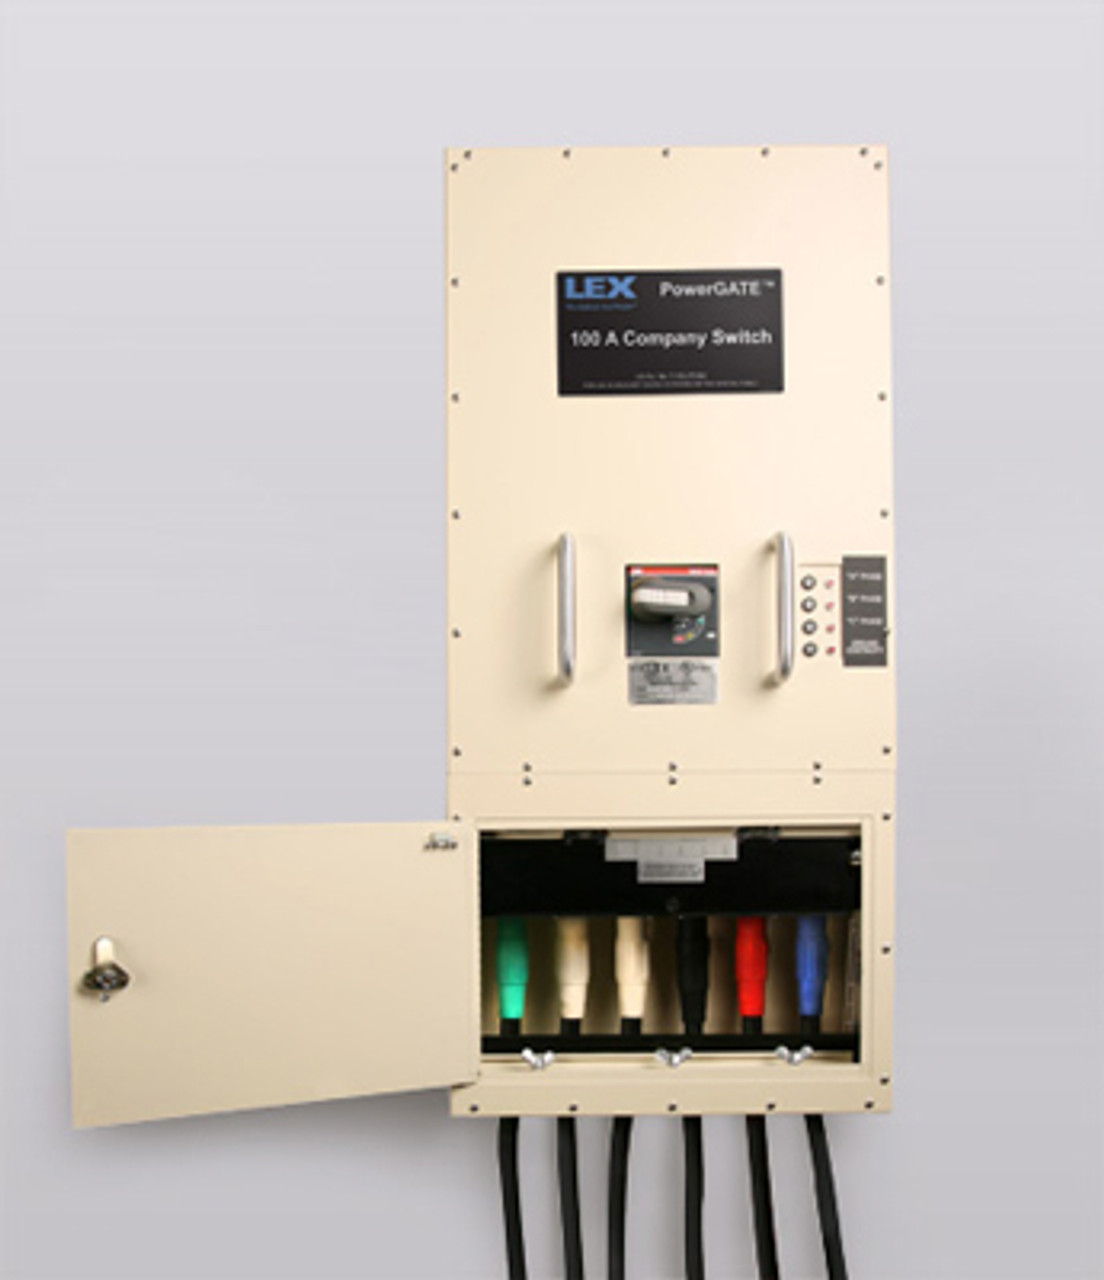 Lex Company Switch - 100A, Type 1, Indoor